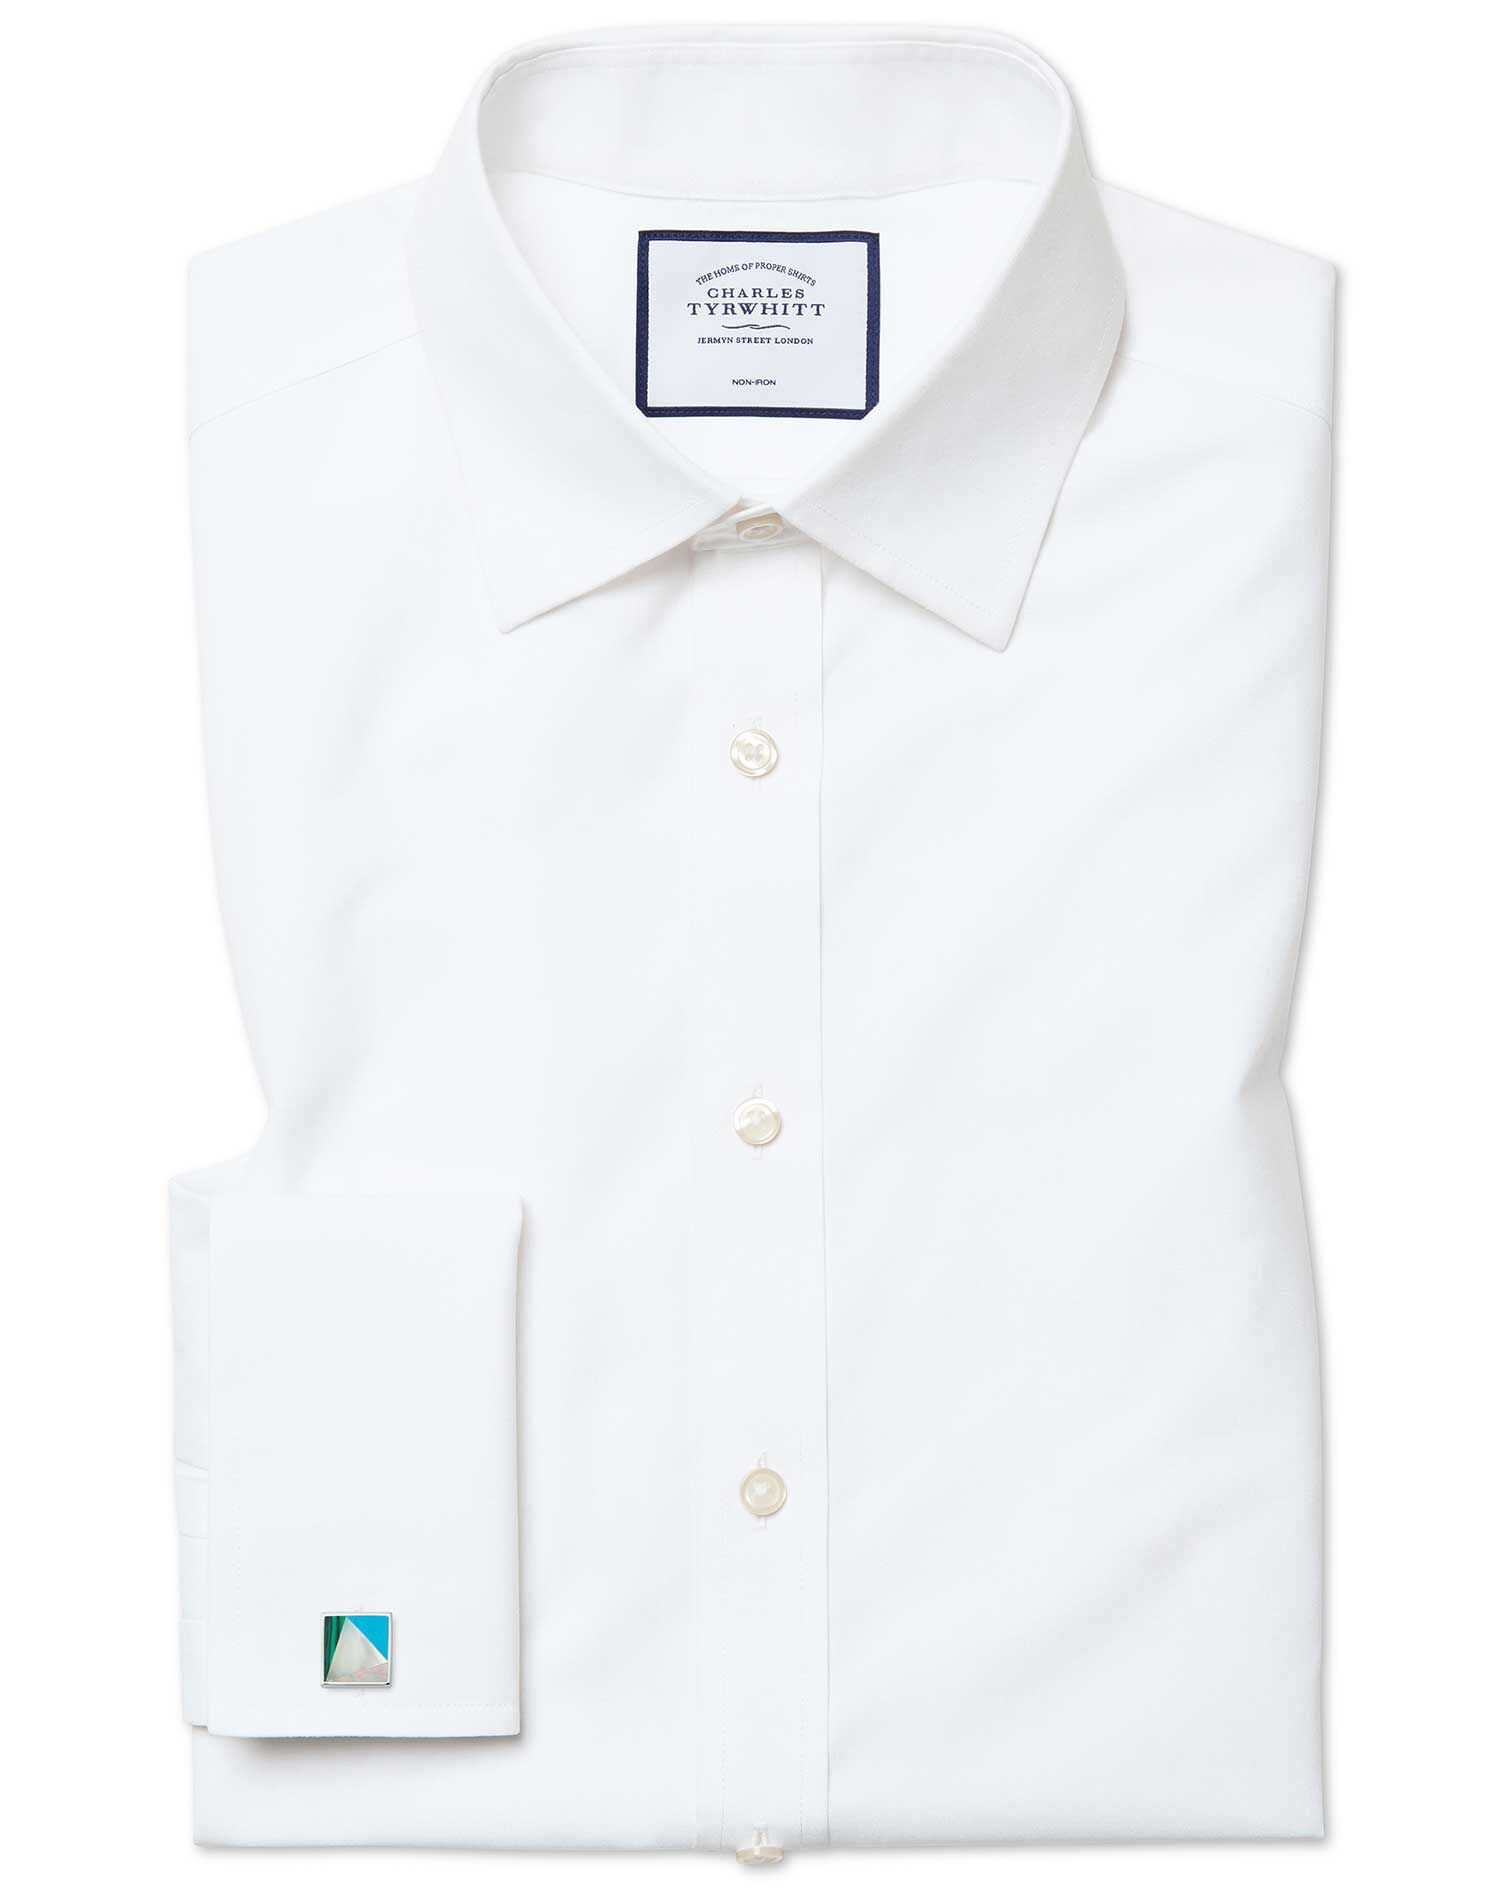 Classic Fit Non-Iron Poplin White Cotton Formal Shirt Single Cuff Size 17.5/34 by Charles Tyrwhitt